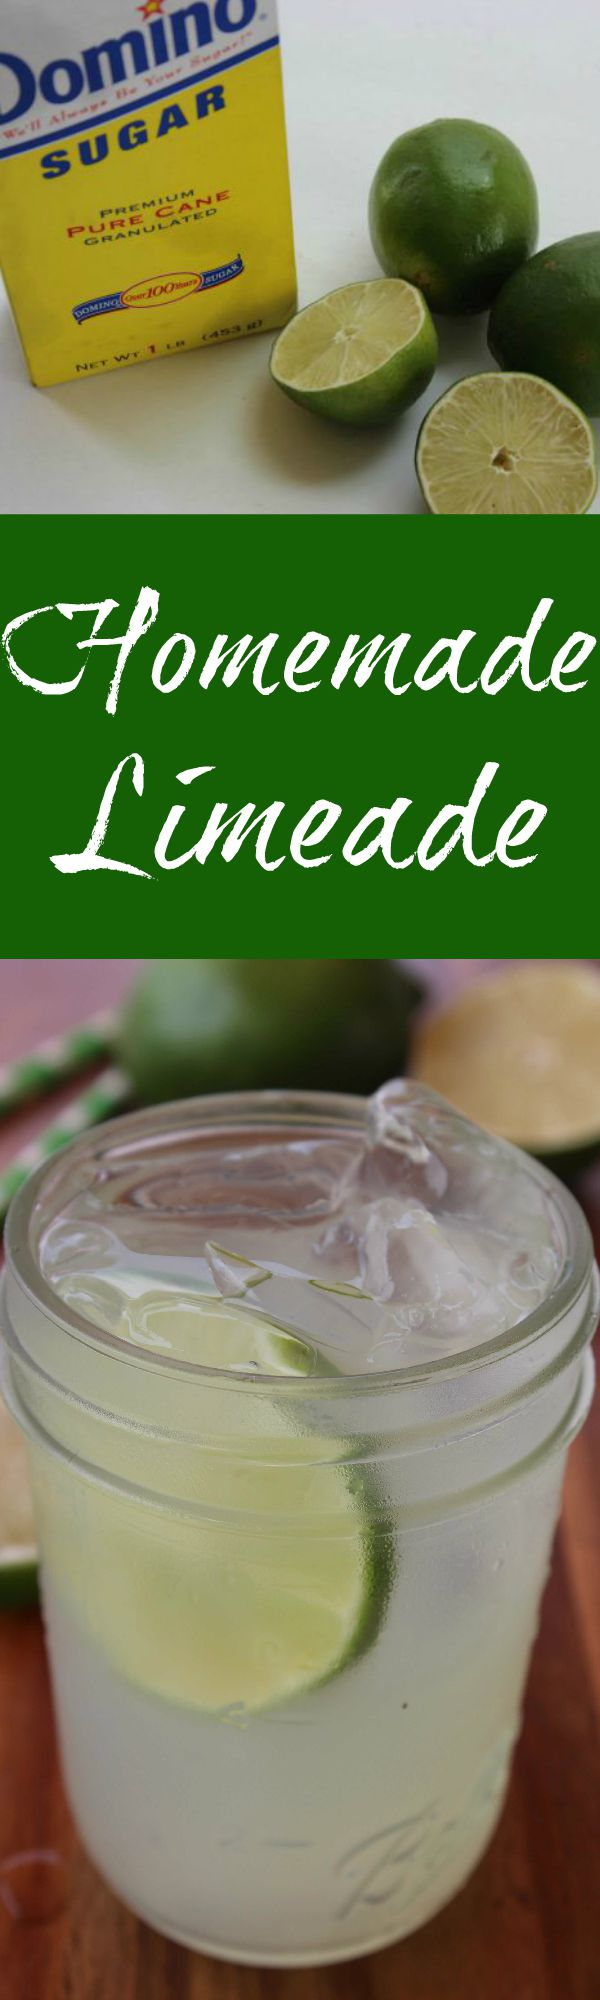 Limeade you can make at home